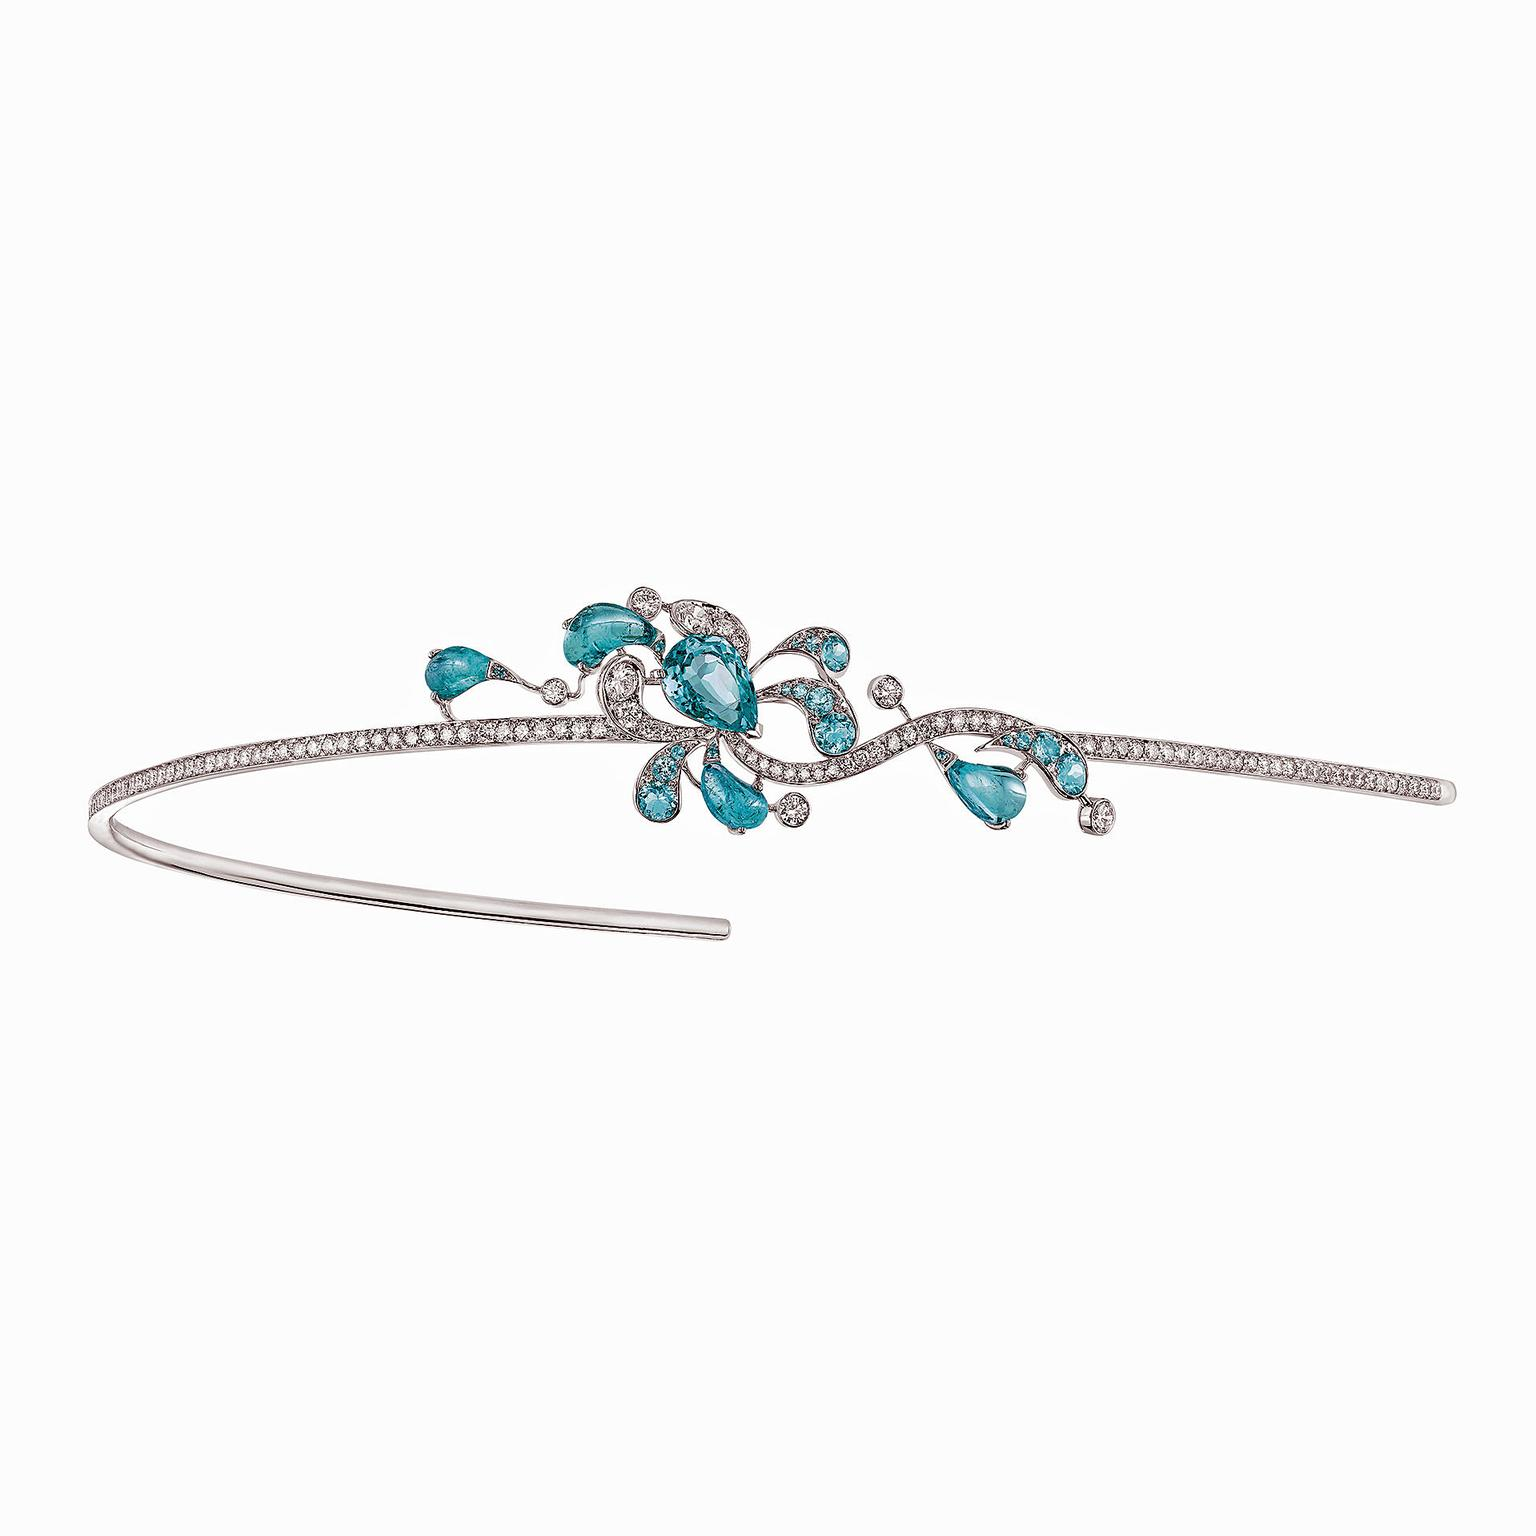 Chaumet diamond and Paraiba tourmaline hairpiece